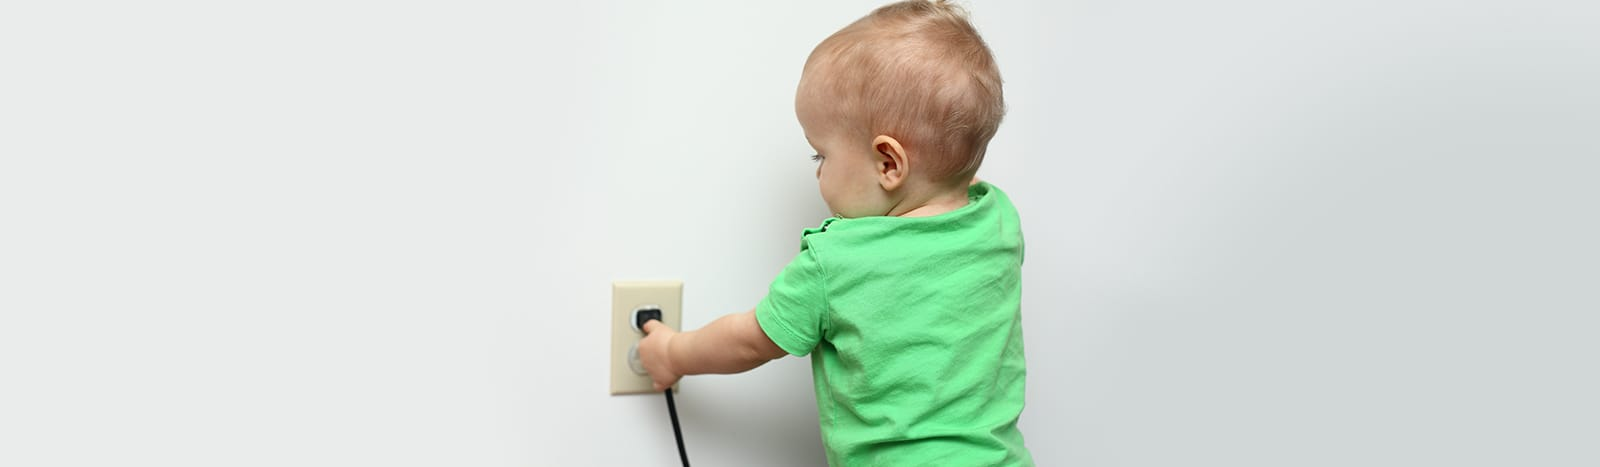 Young child playing with electrical plug outlet